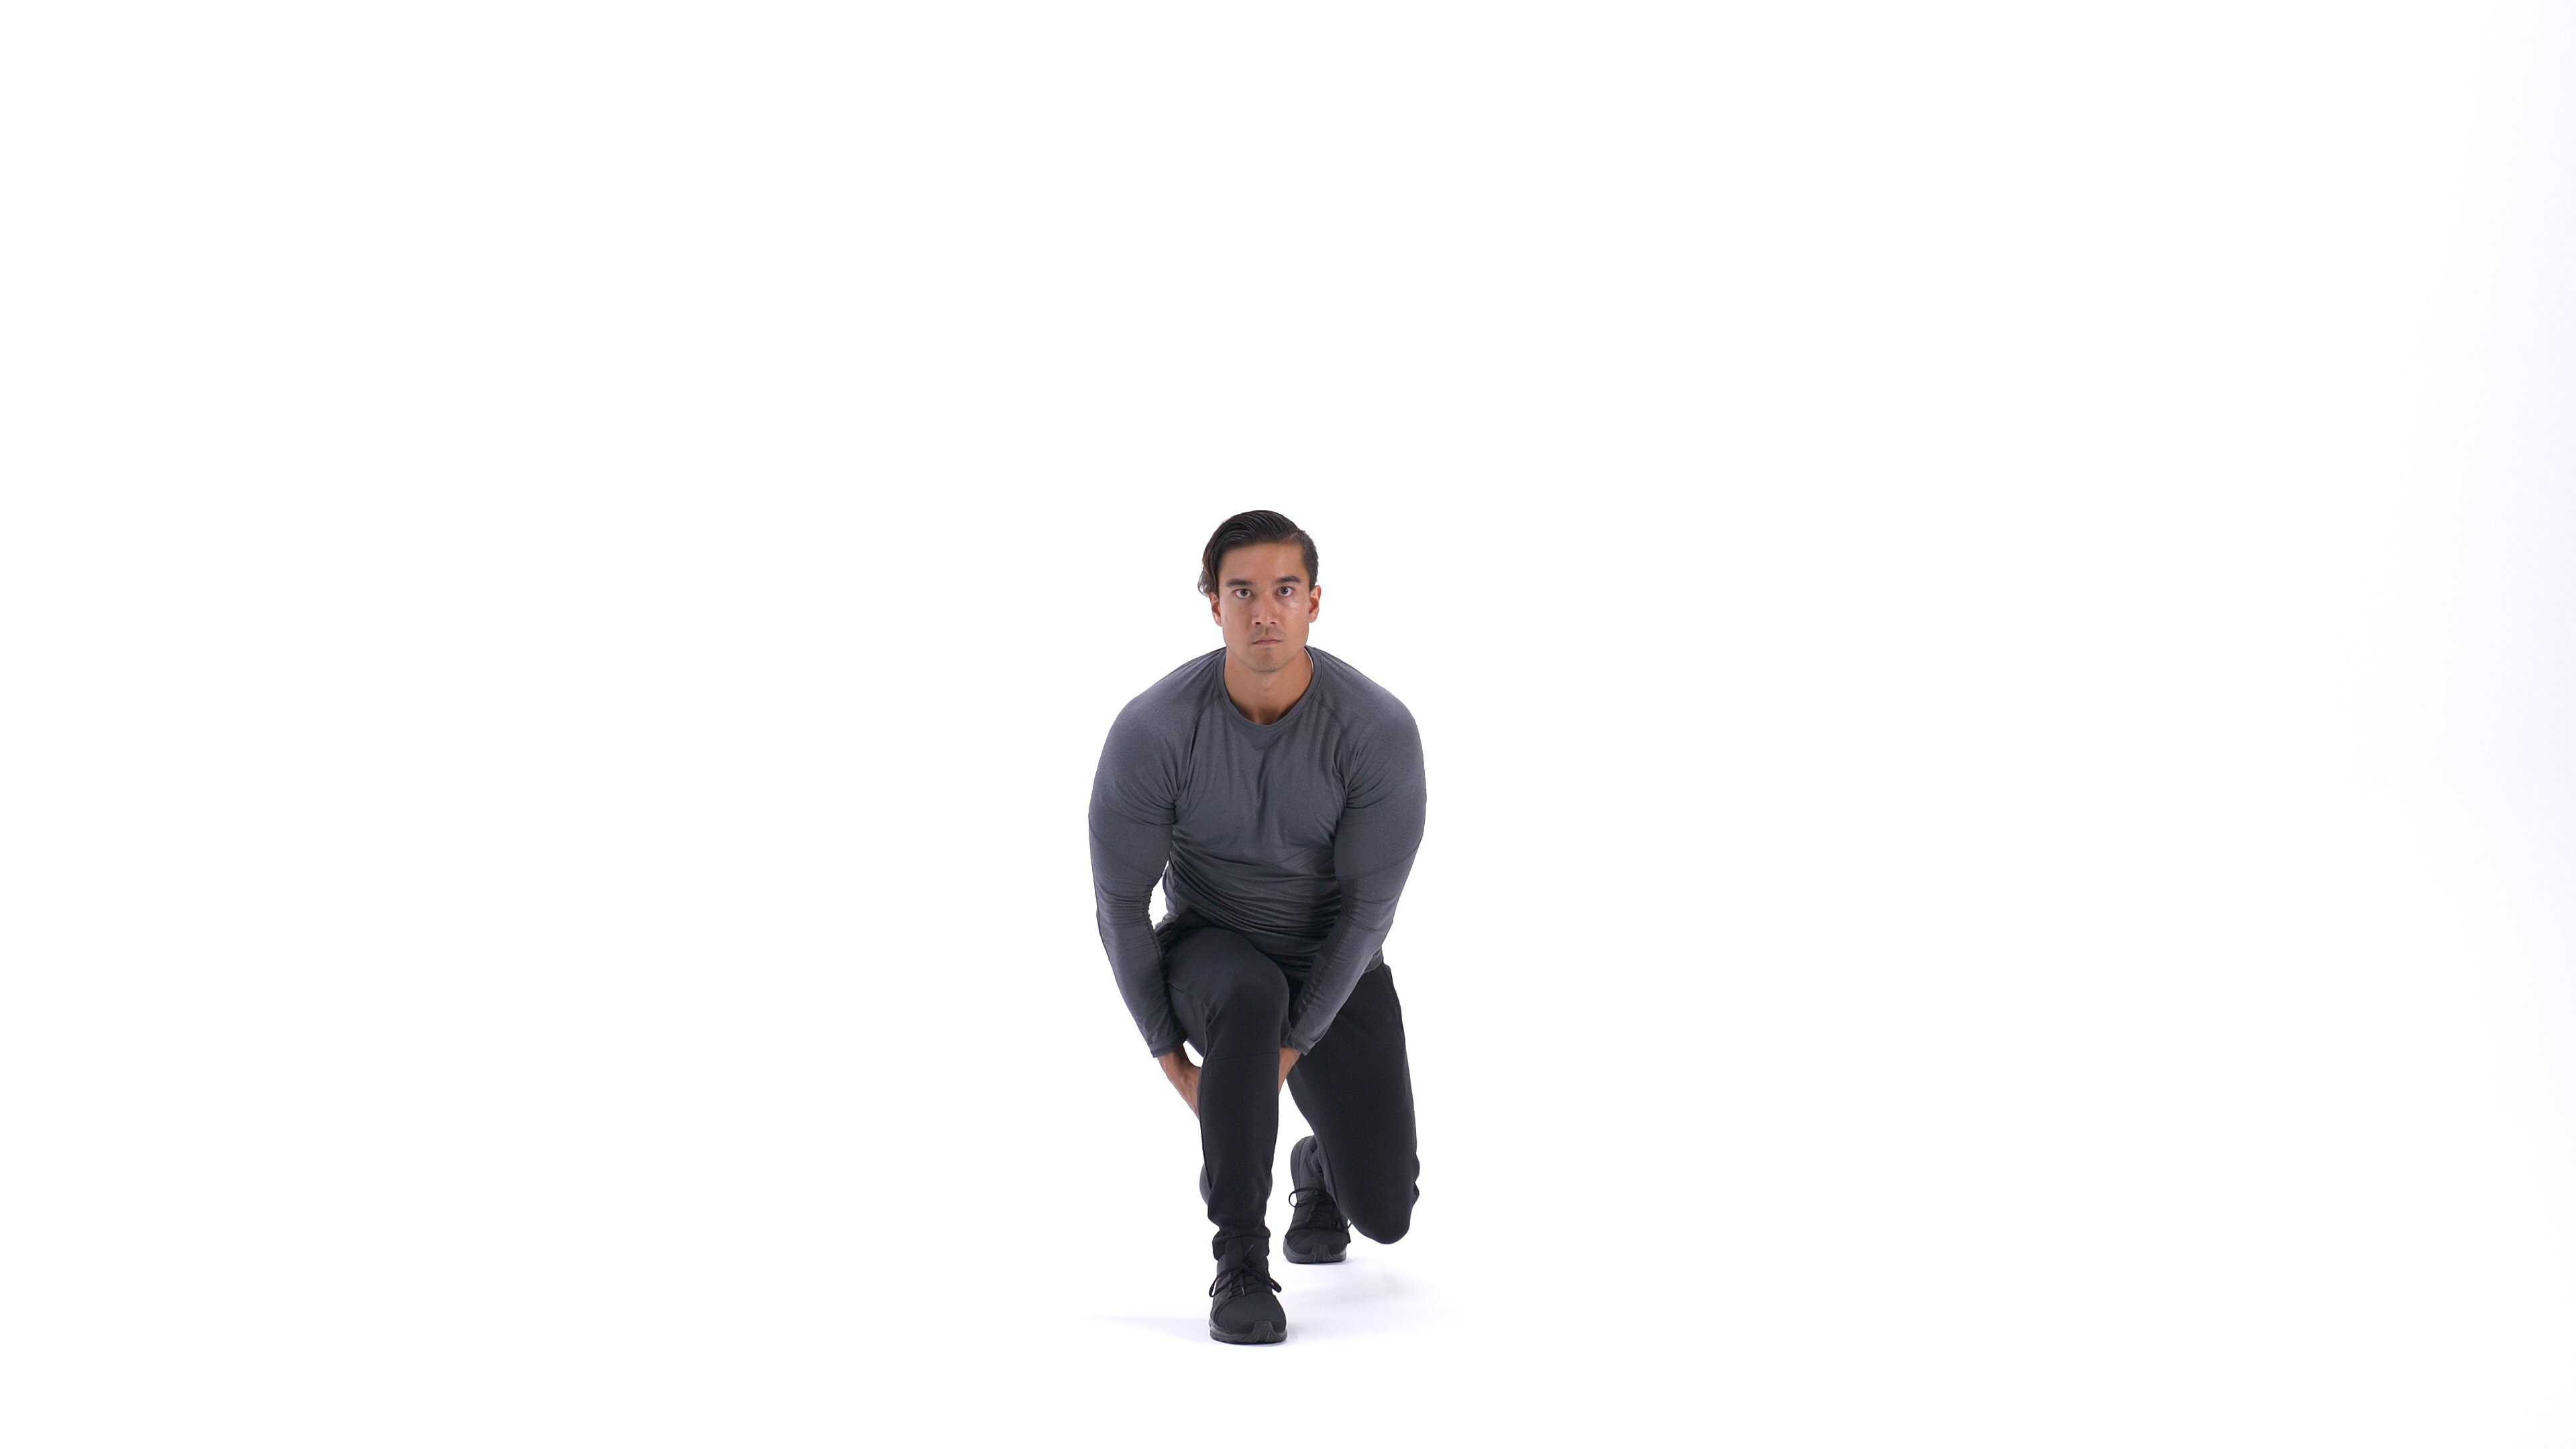 Kettlebell pass-through lunge image